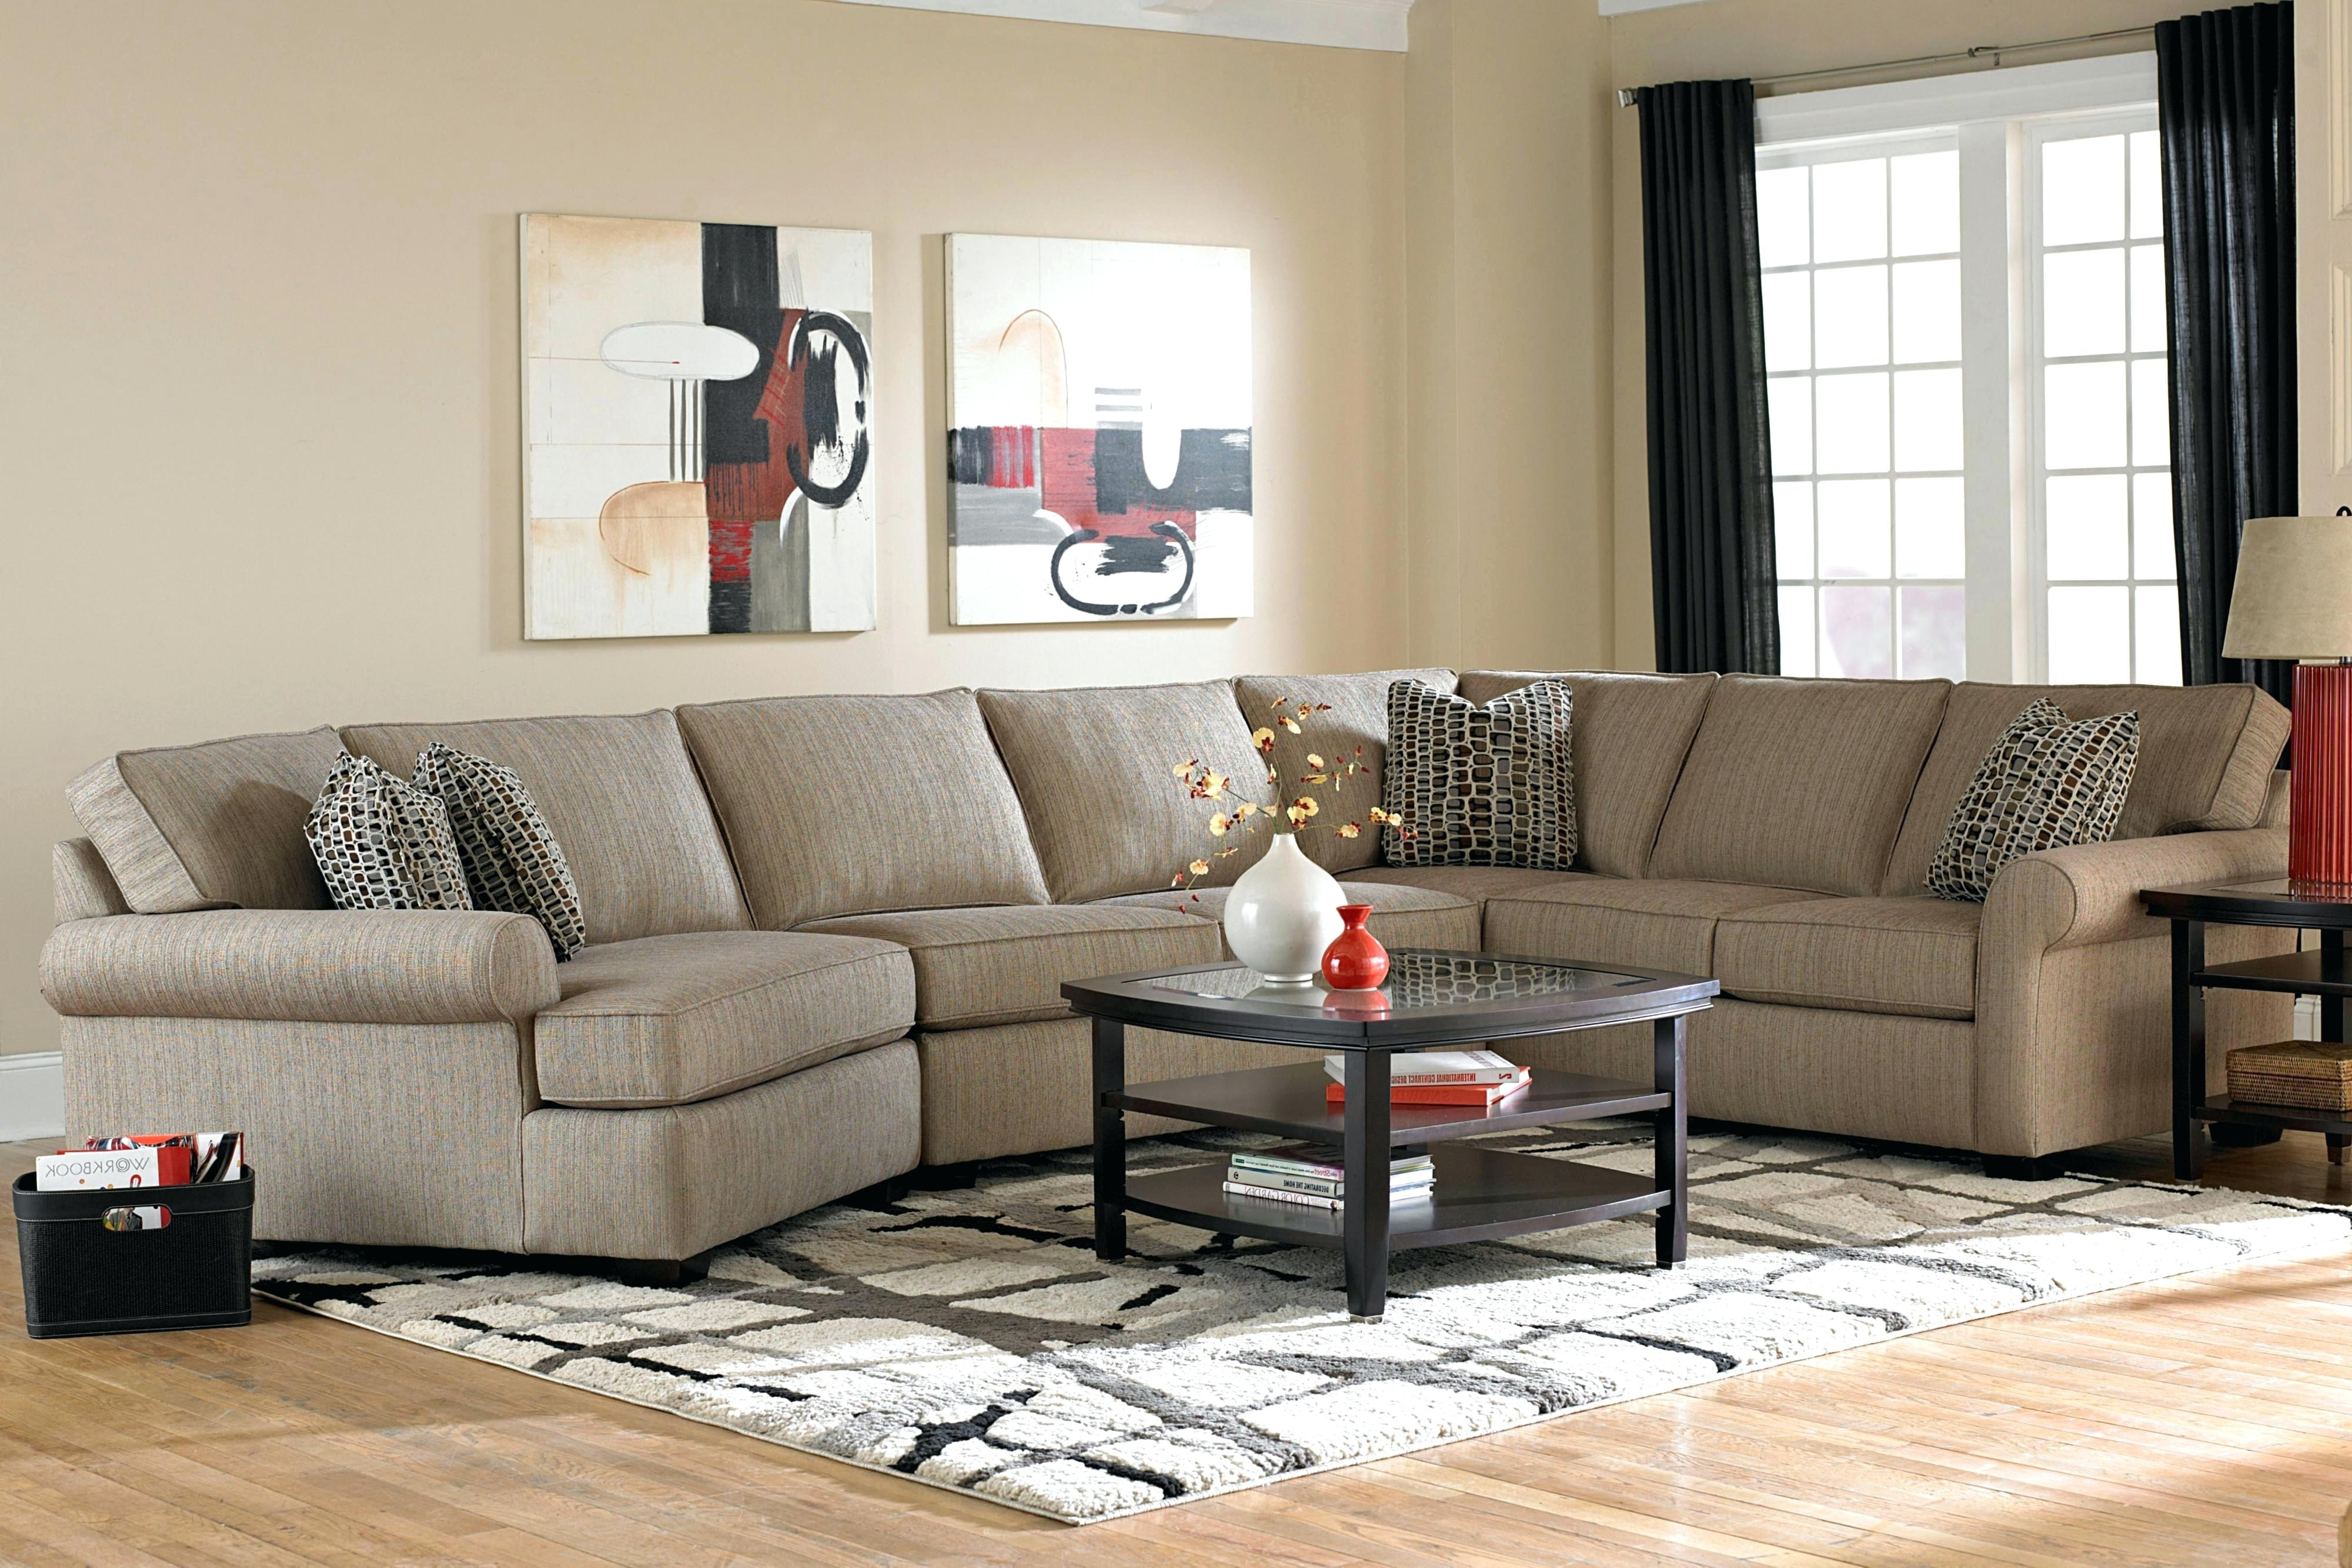 Widely Used Broyhill Furniture Sale 3 Sofa With All Around Wood Base – 4Parkar Pertaining To Broyhill Sectional Sofas (View 8 of 15)